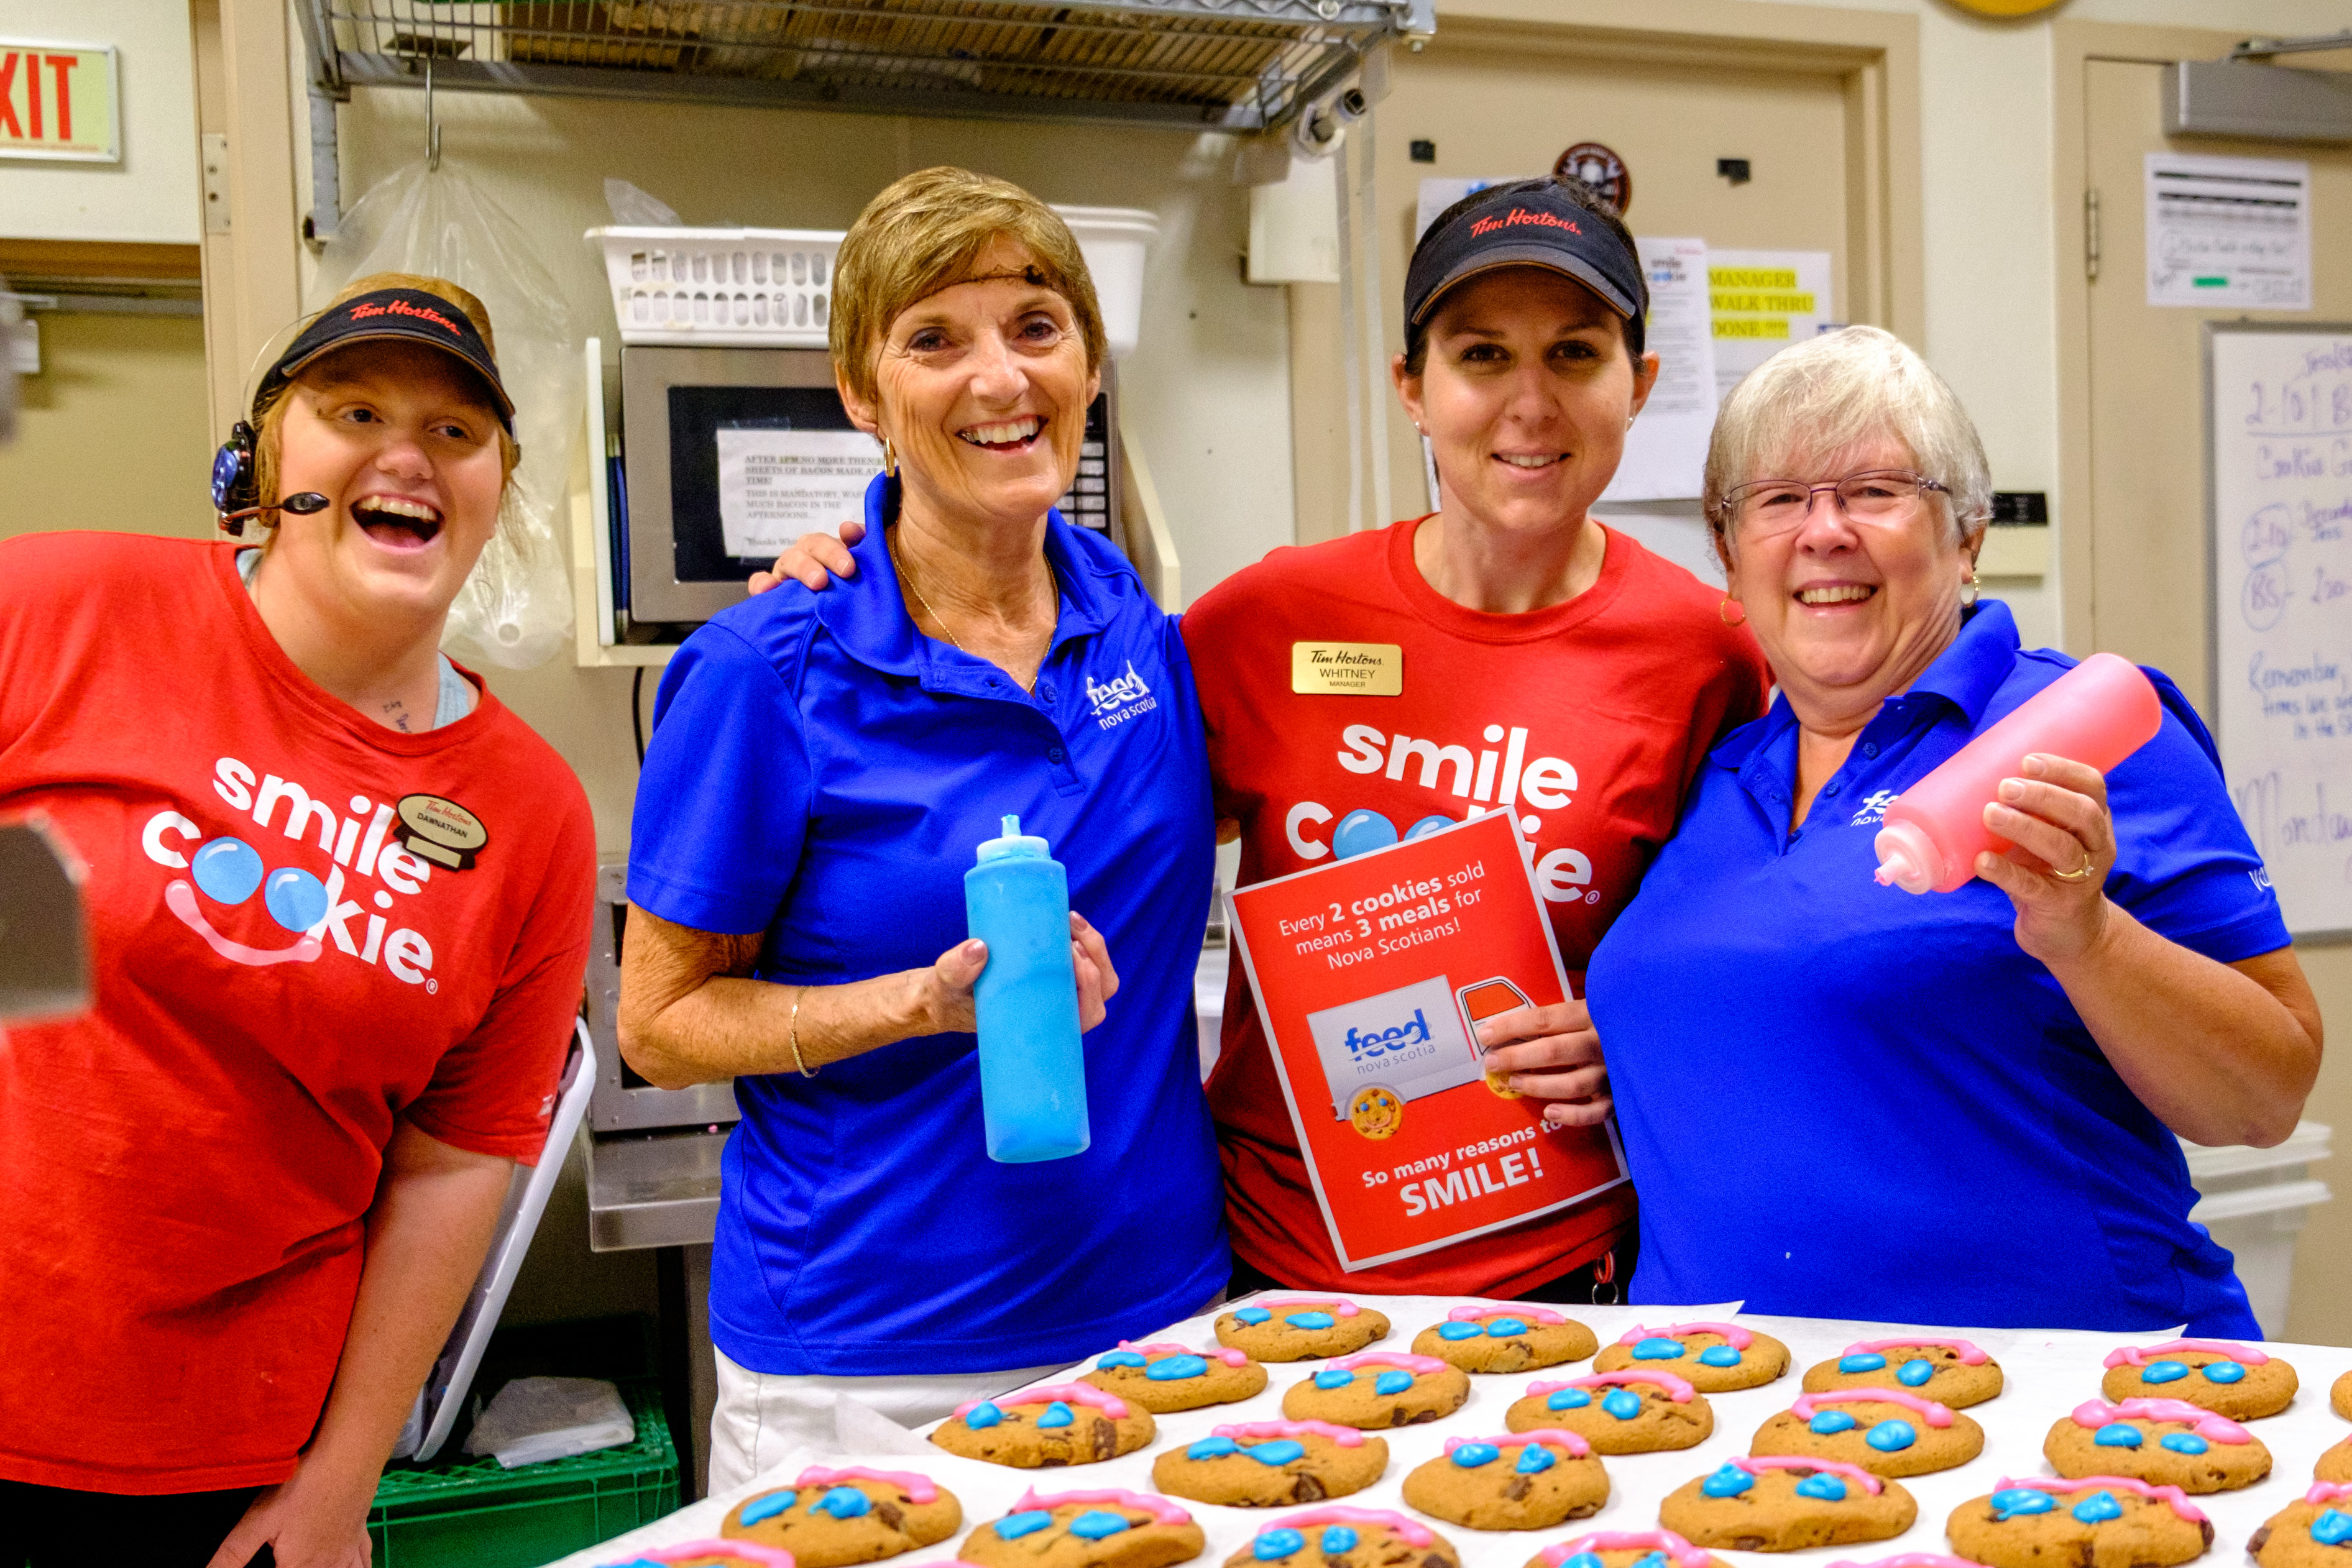 Feed Nova Scotia volunteers and Tim Hortons staff posing with Smile Cookies